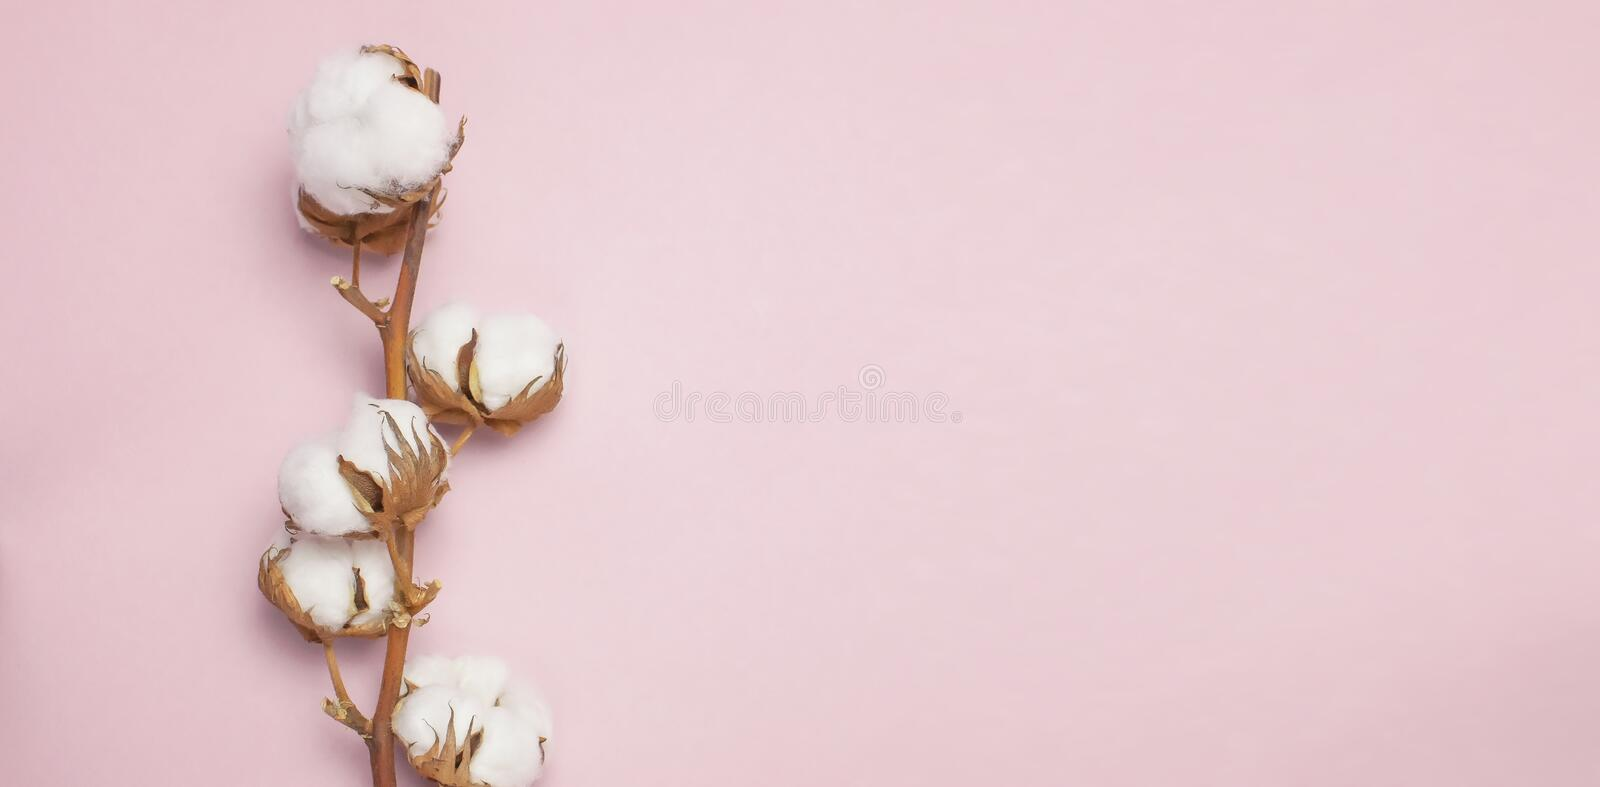 Cotton branch on pink background Flat lay Top view. Delicate white cotton flowers. stock photos